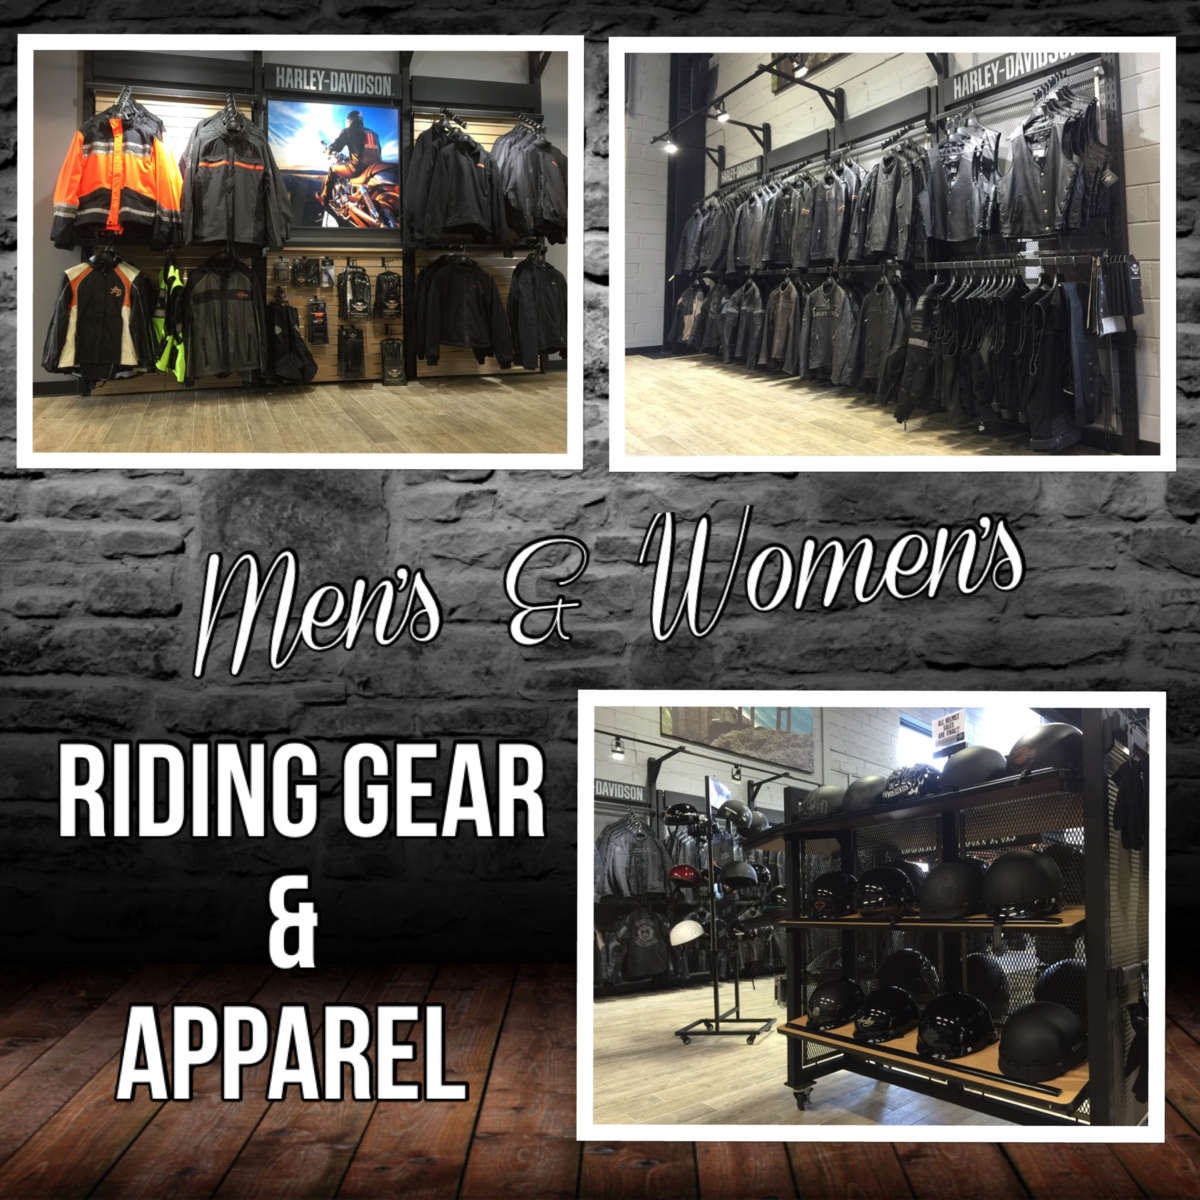 Motorclothes Department at Garden State Harley-Davidson